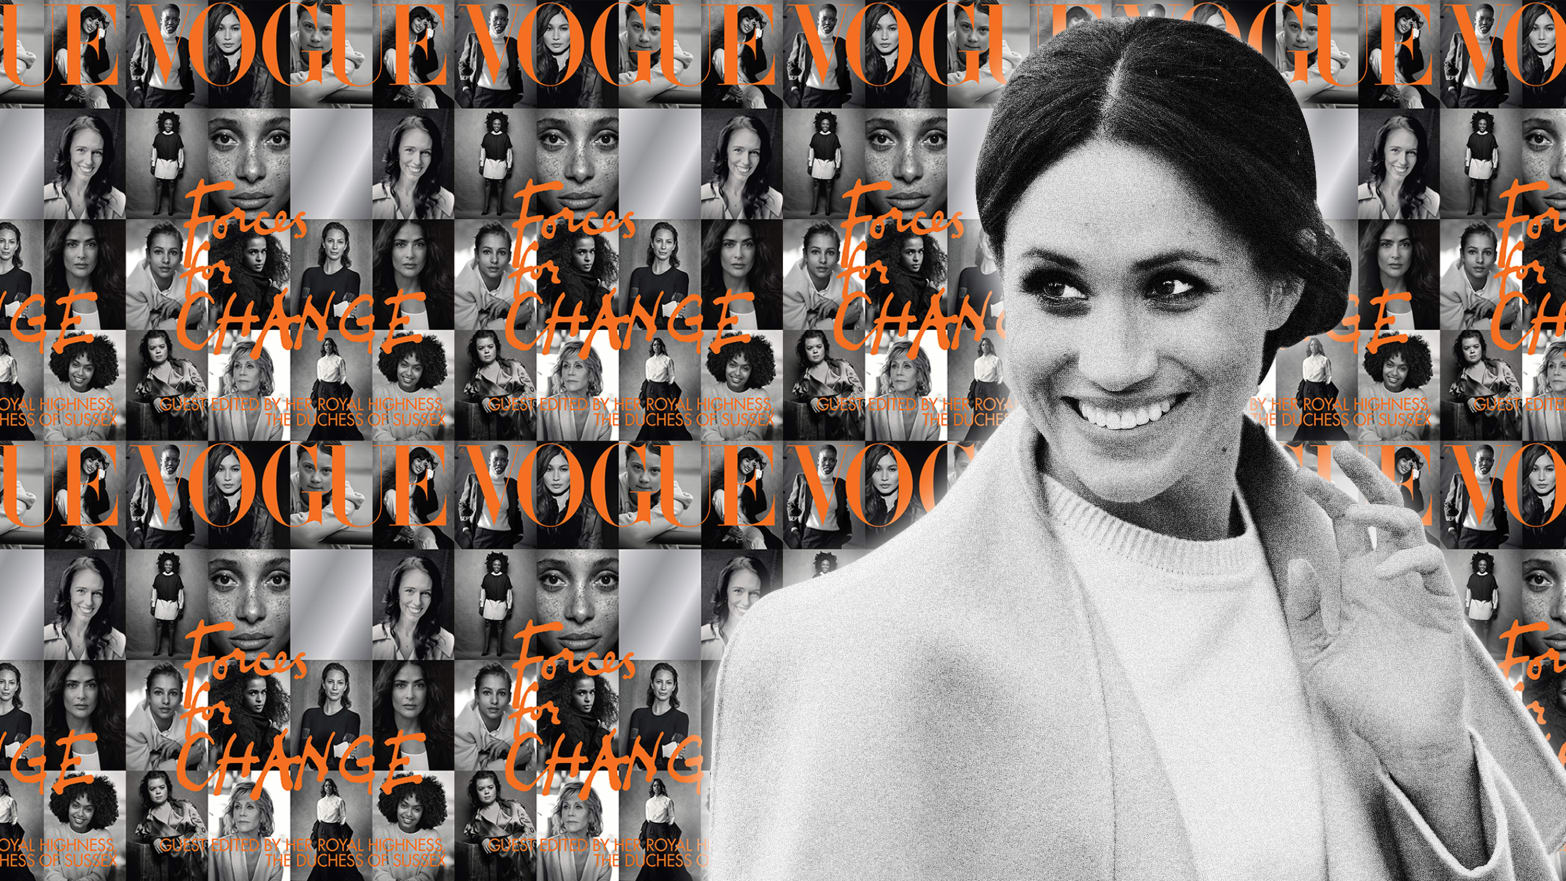 The Fashion in Meghan Markle's Vogue: Big on Serious, Low on Fun